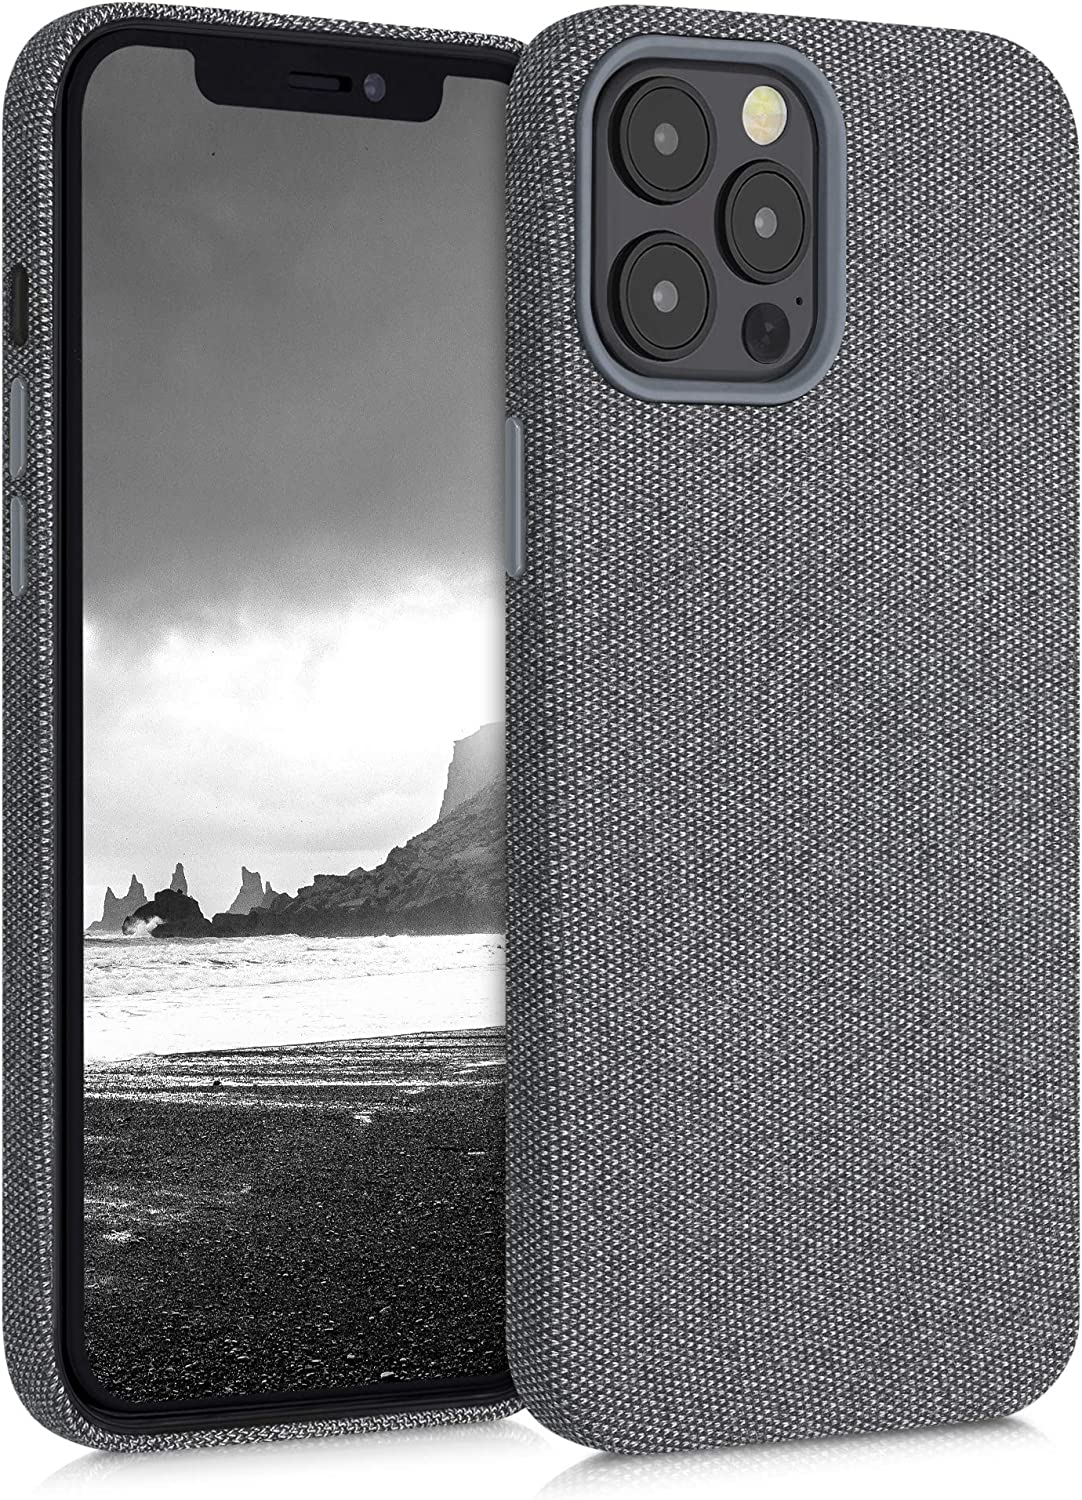 kwmobile Case Compatible with Apple iPhone 12 Pro Max - Case TPU and Fabric Smartphone Phone Cover in Canvas